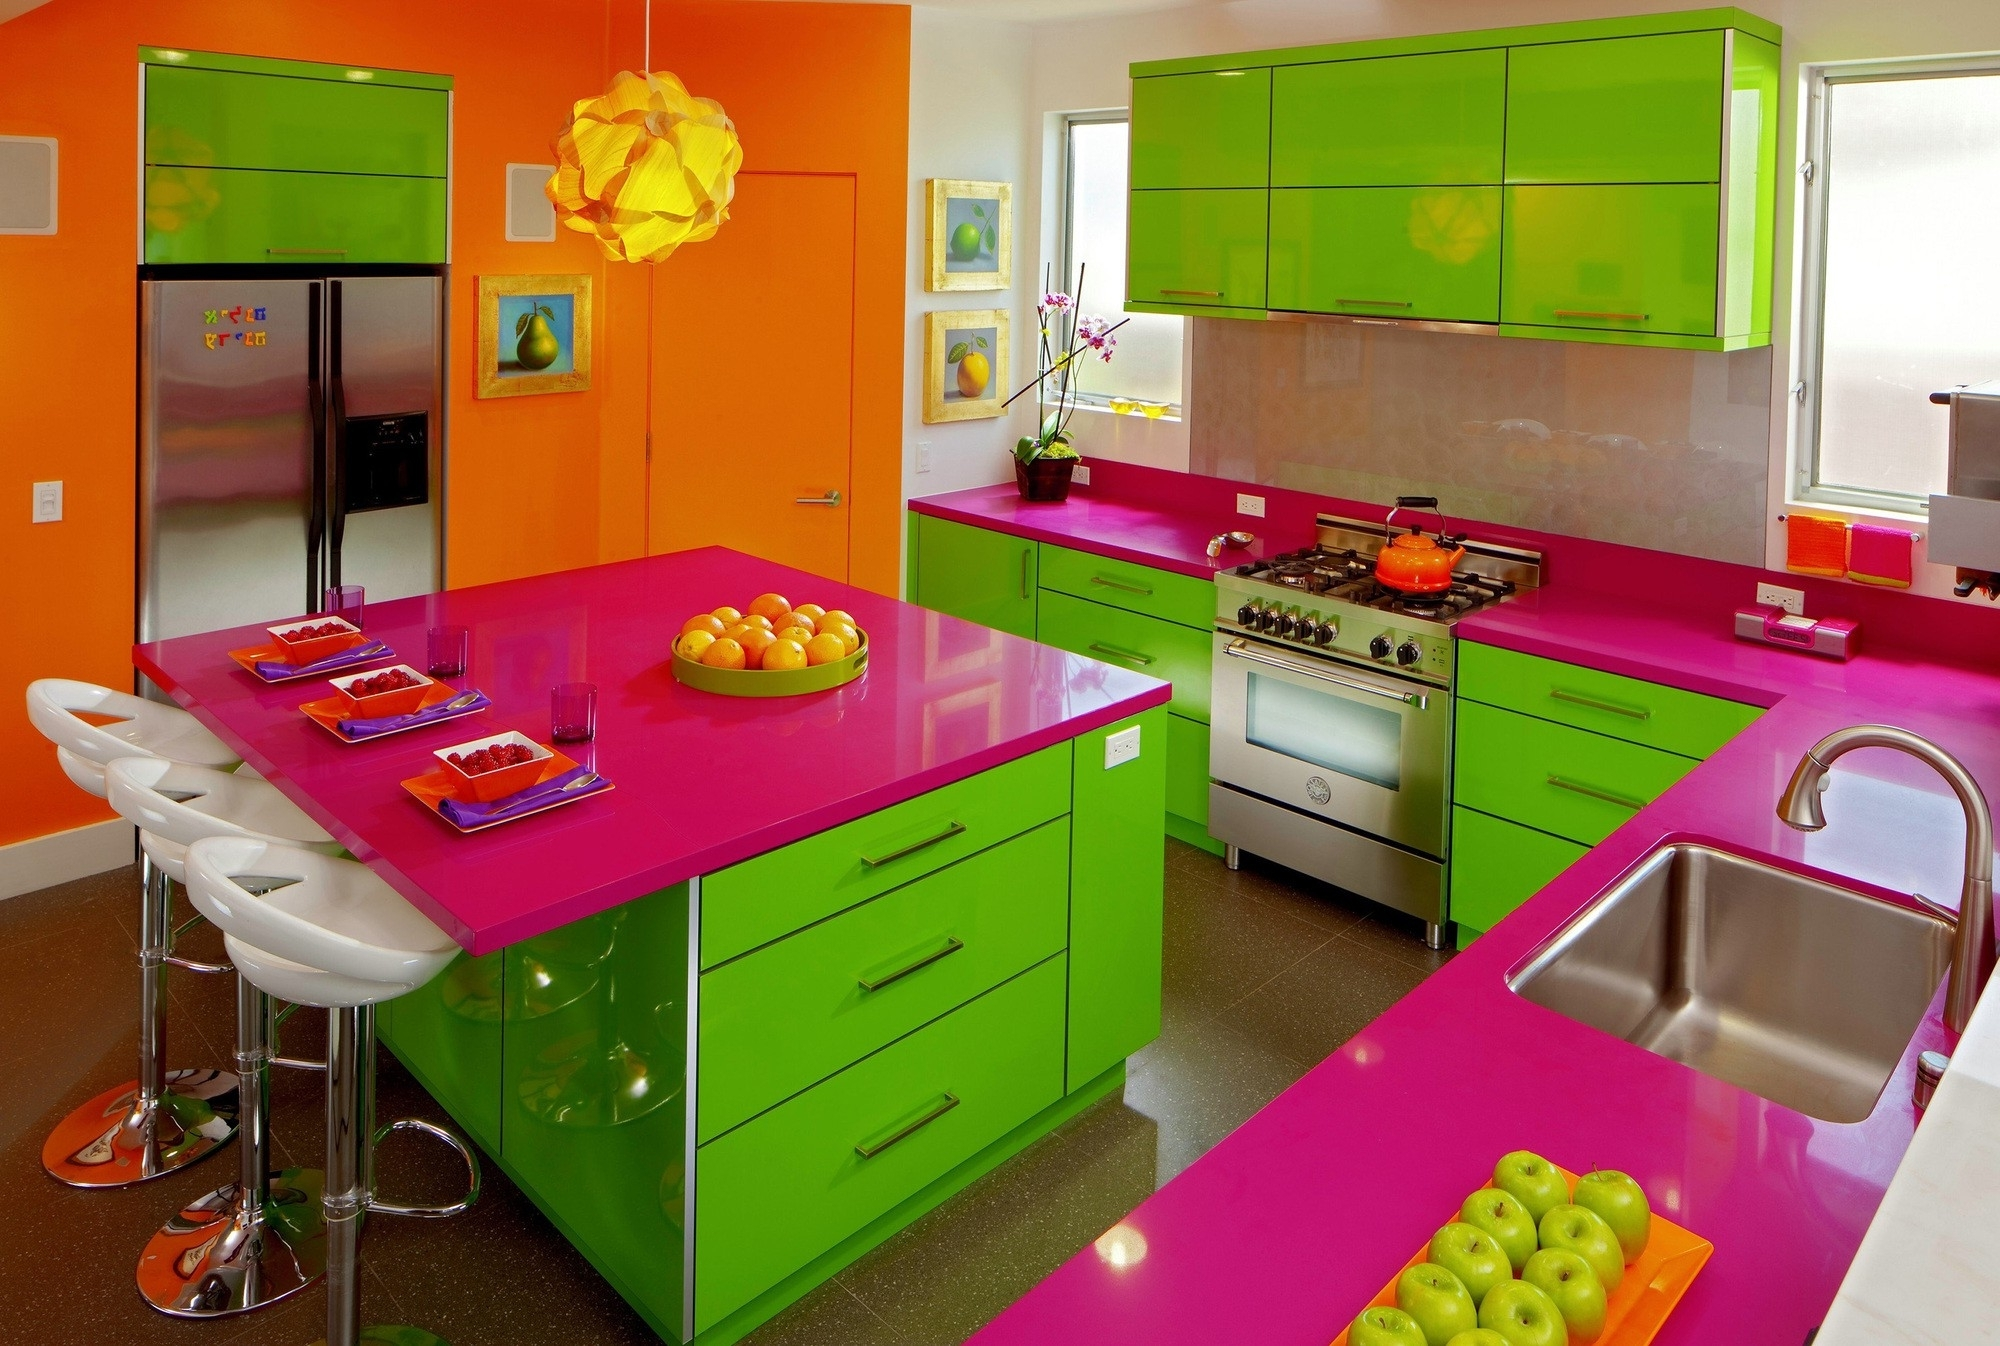 Wall Accents Cabinets With Regard To Latest Bright Accent Wall Color Scheme Of Modern Kitchen Design (View 13 of 15)